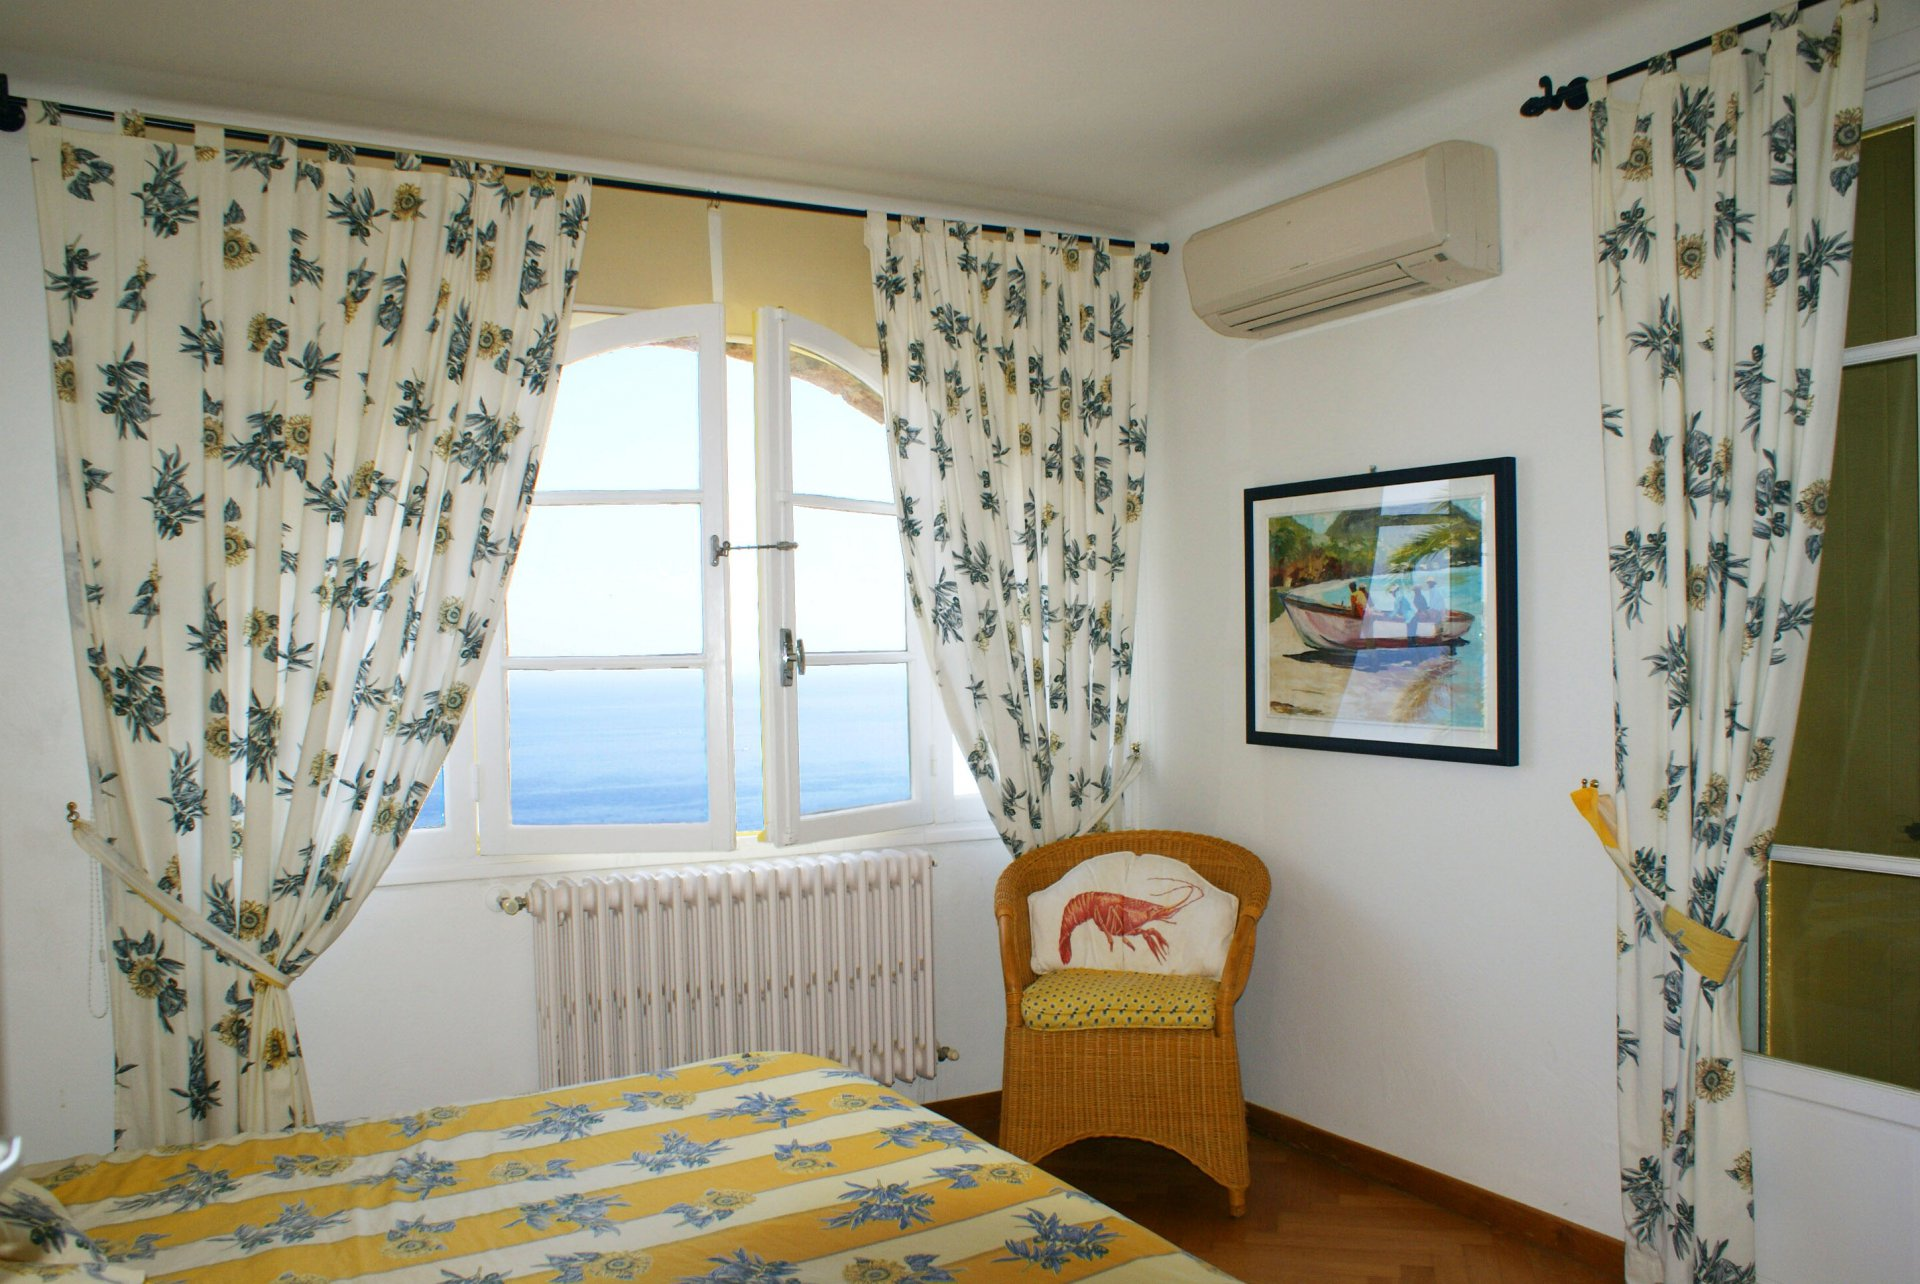 Exceptional panoramic view on sea and mountains comfortable villa, 4 bed rooms (8 sleeps) * Villa Farandole *